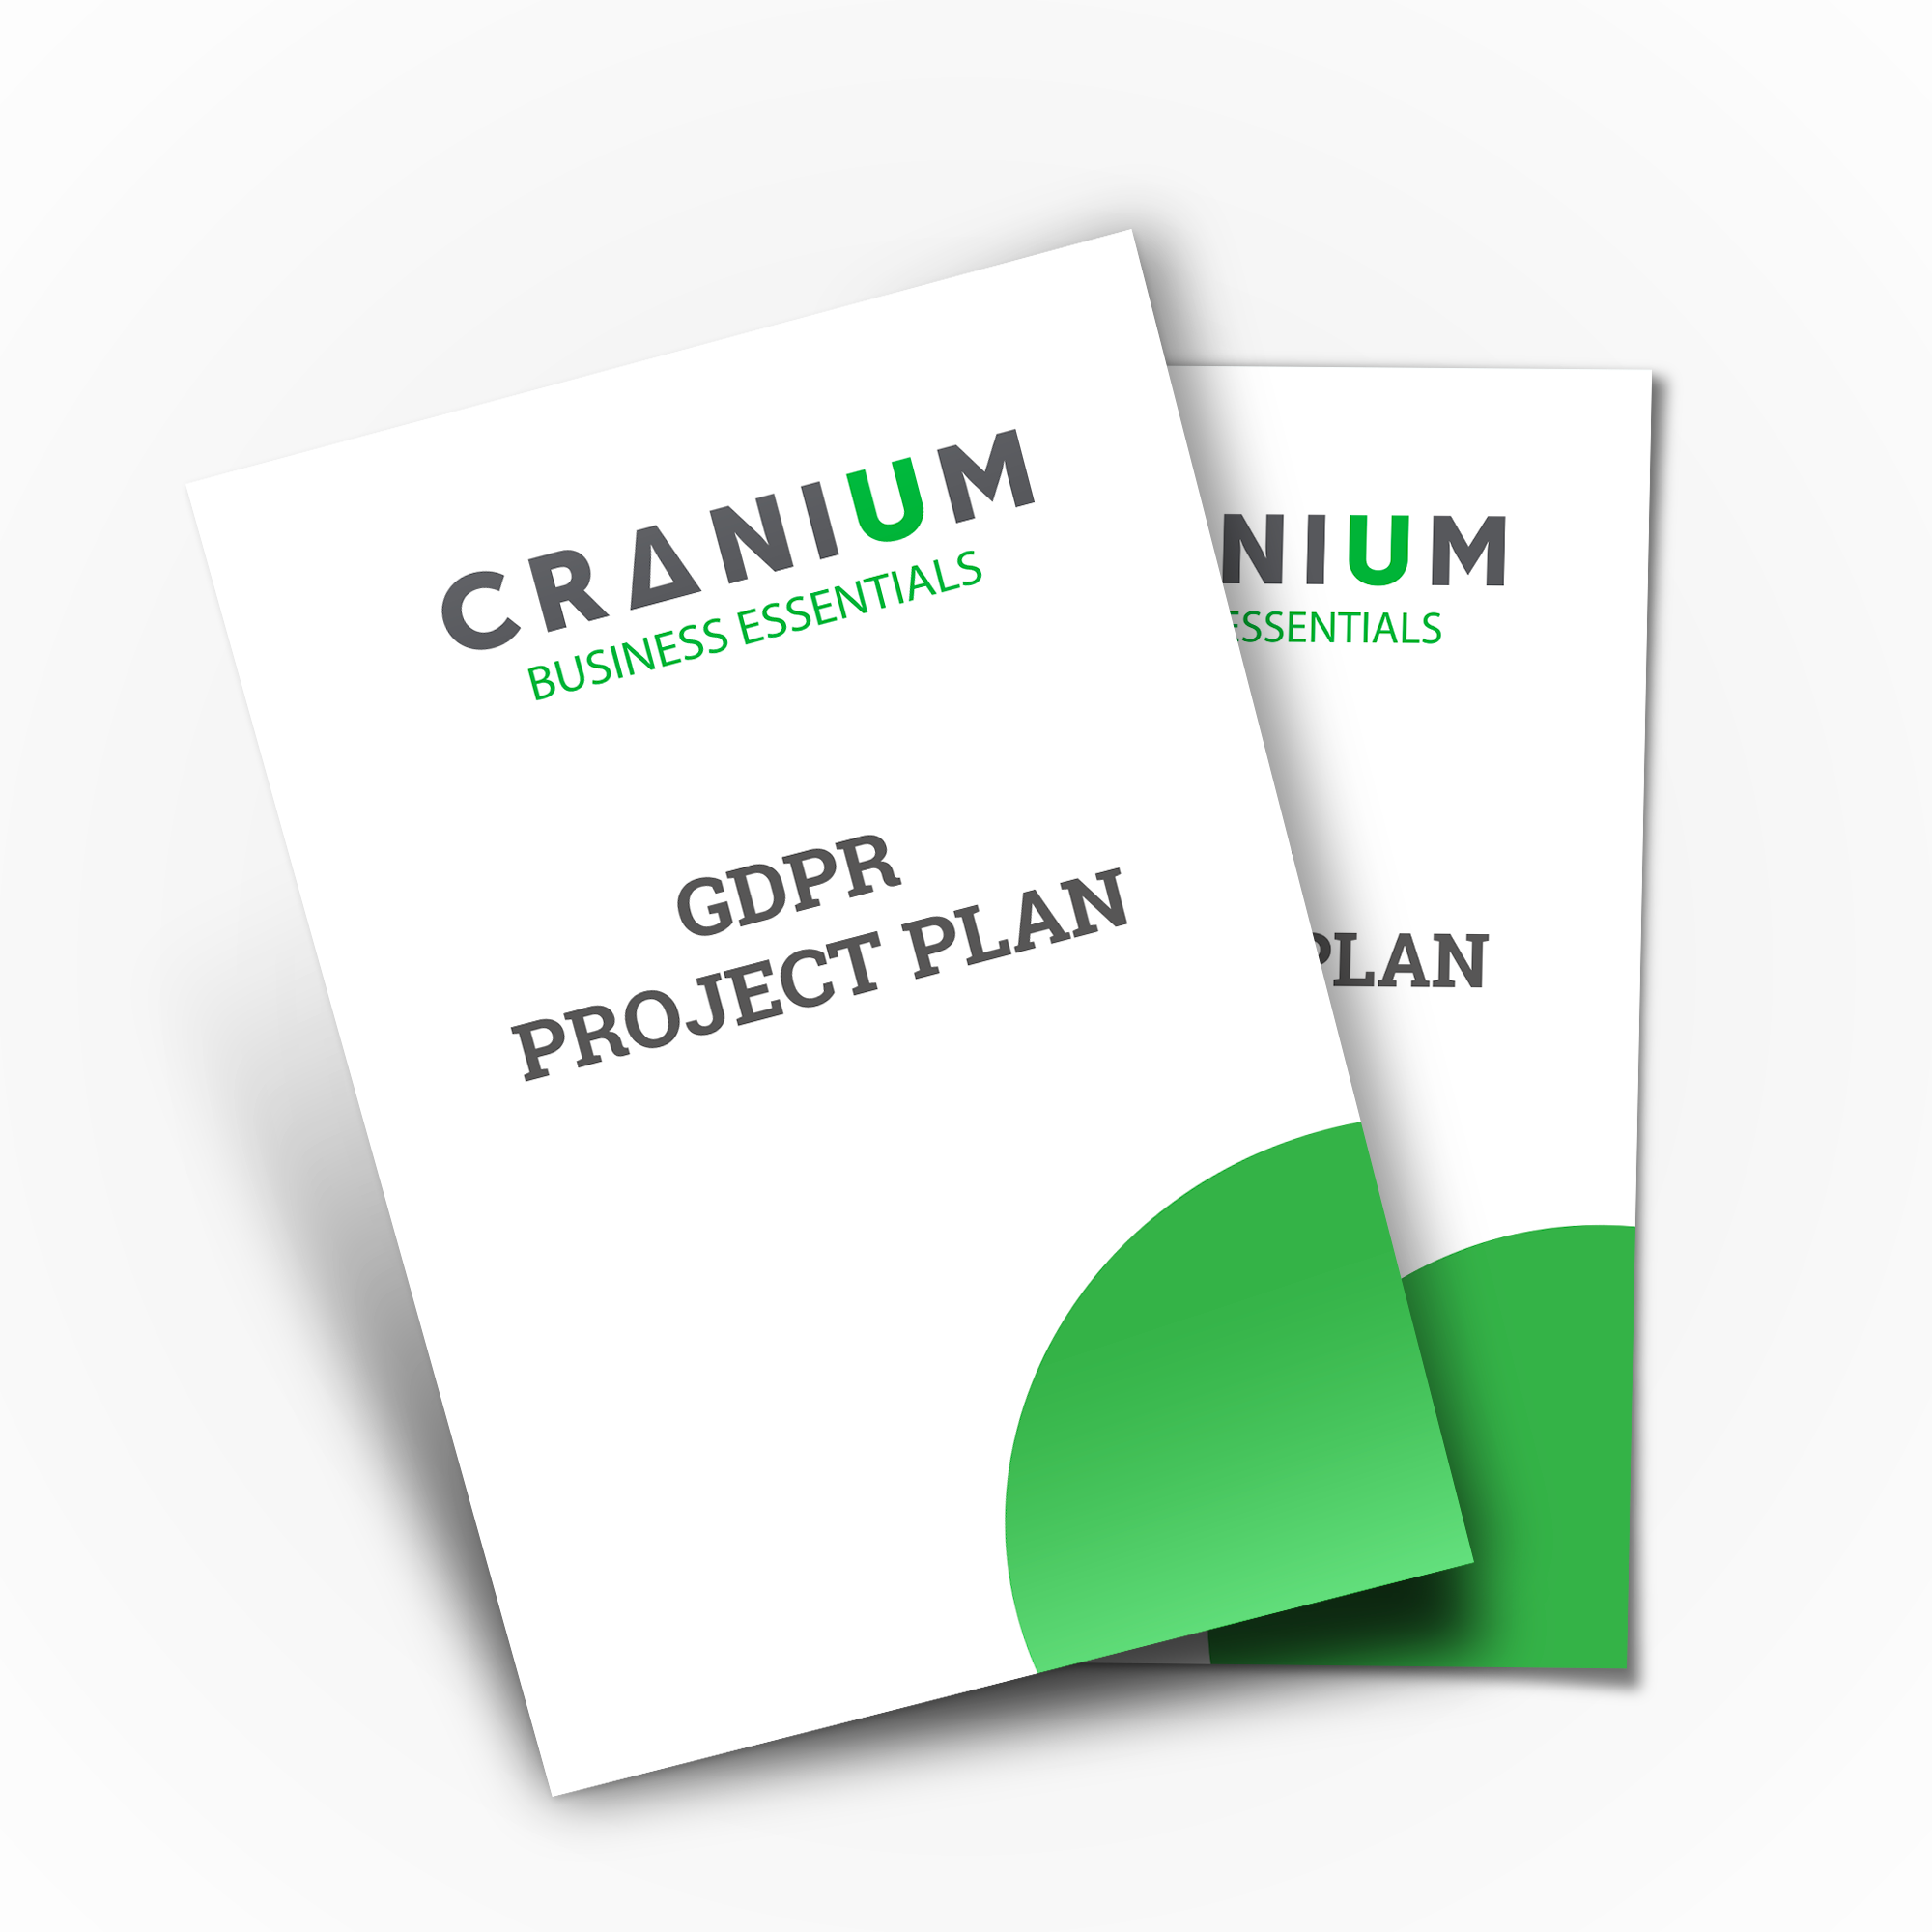 White and green CRANIUM Business Essentials GDPR Project Plan documents